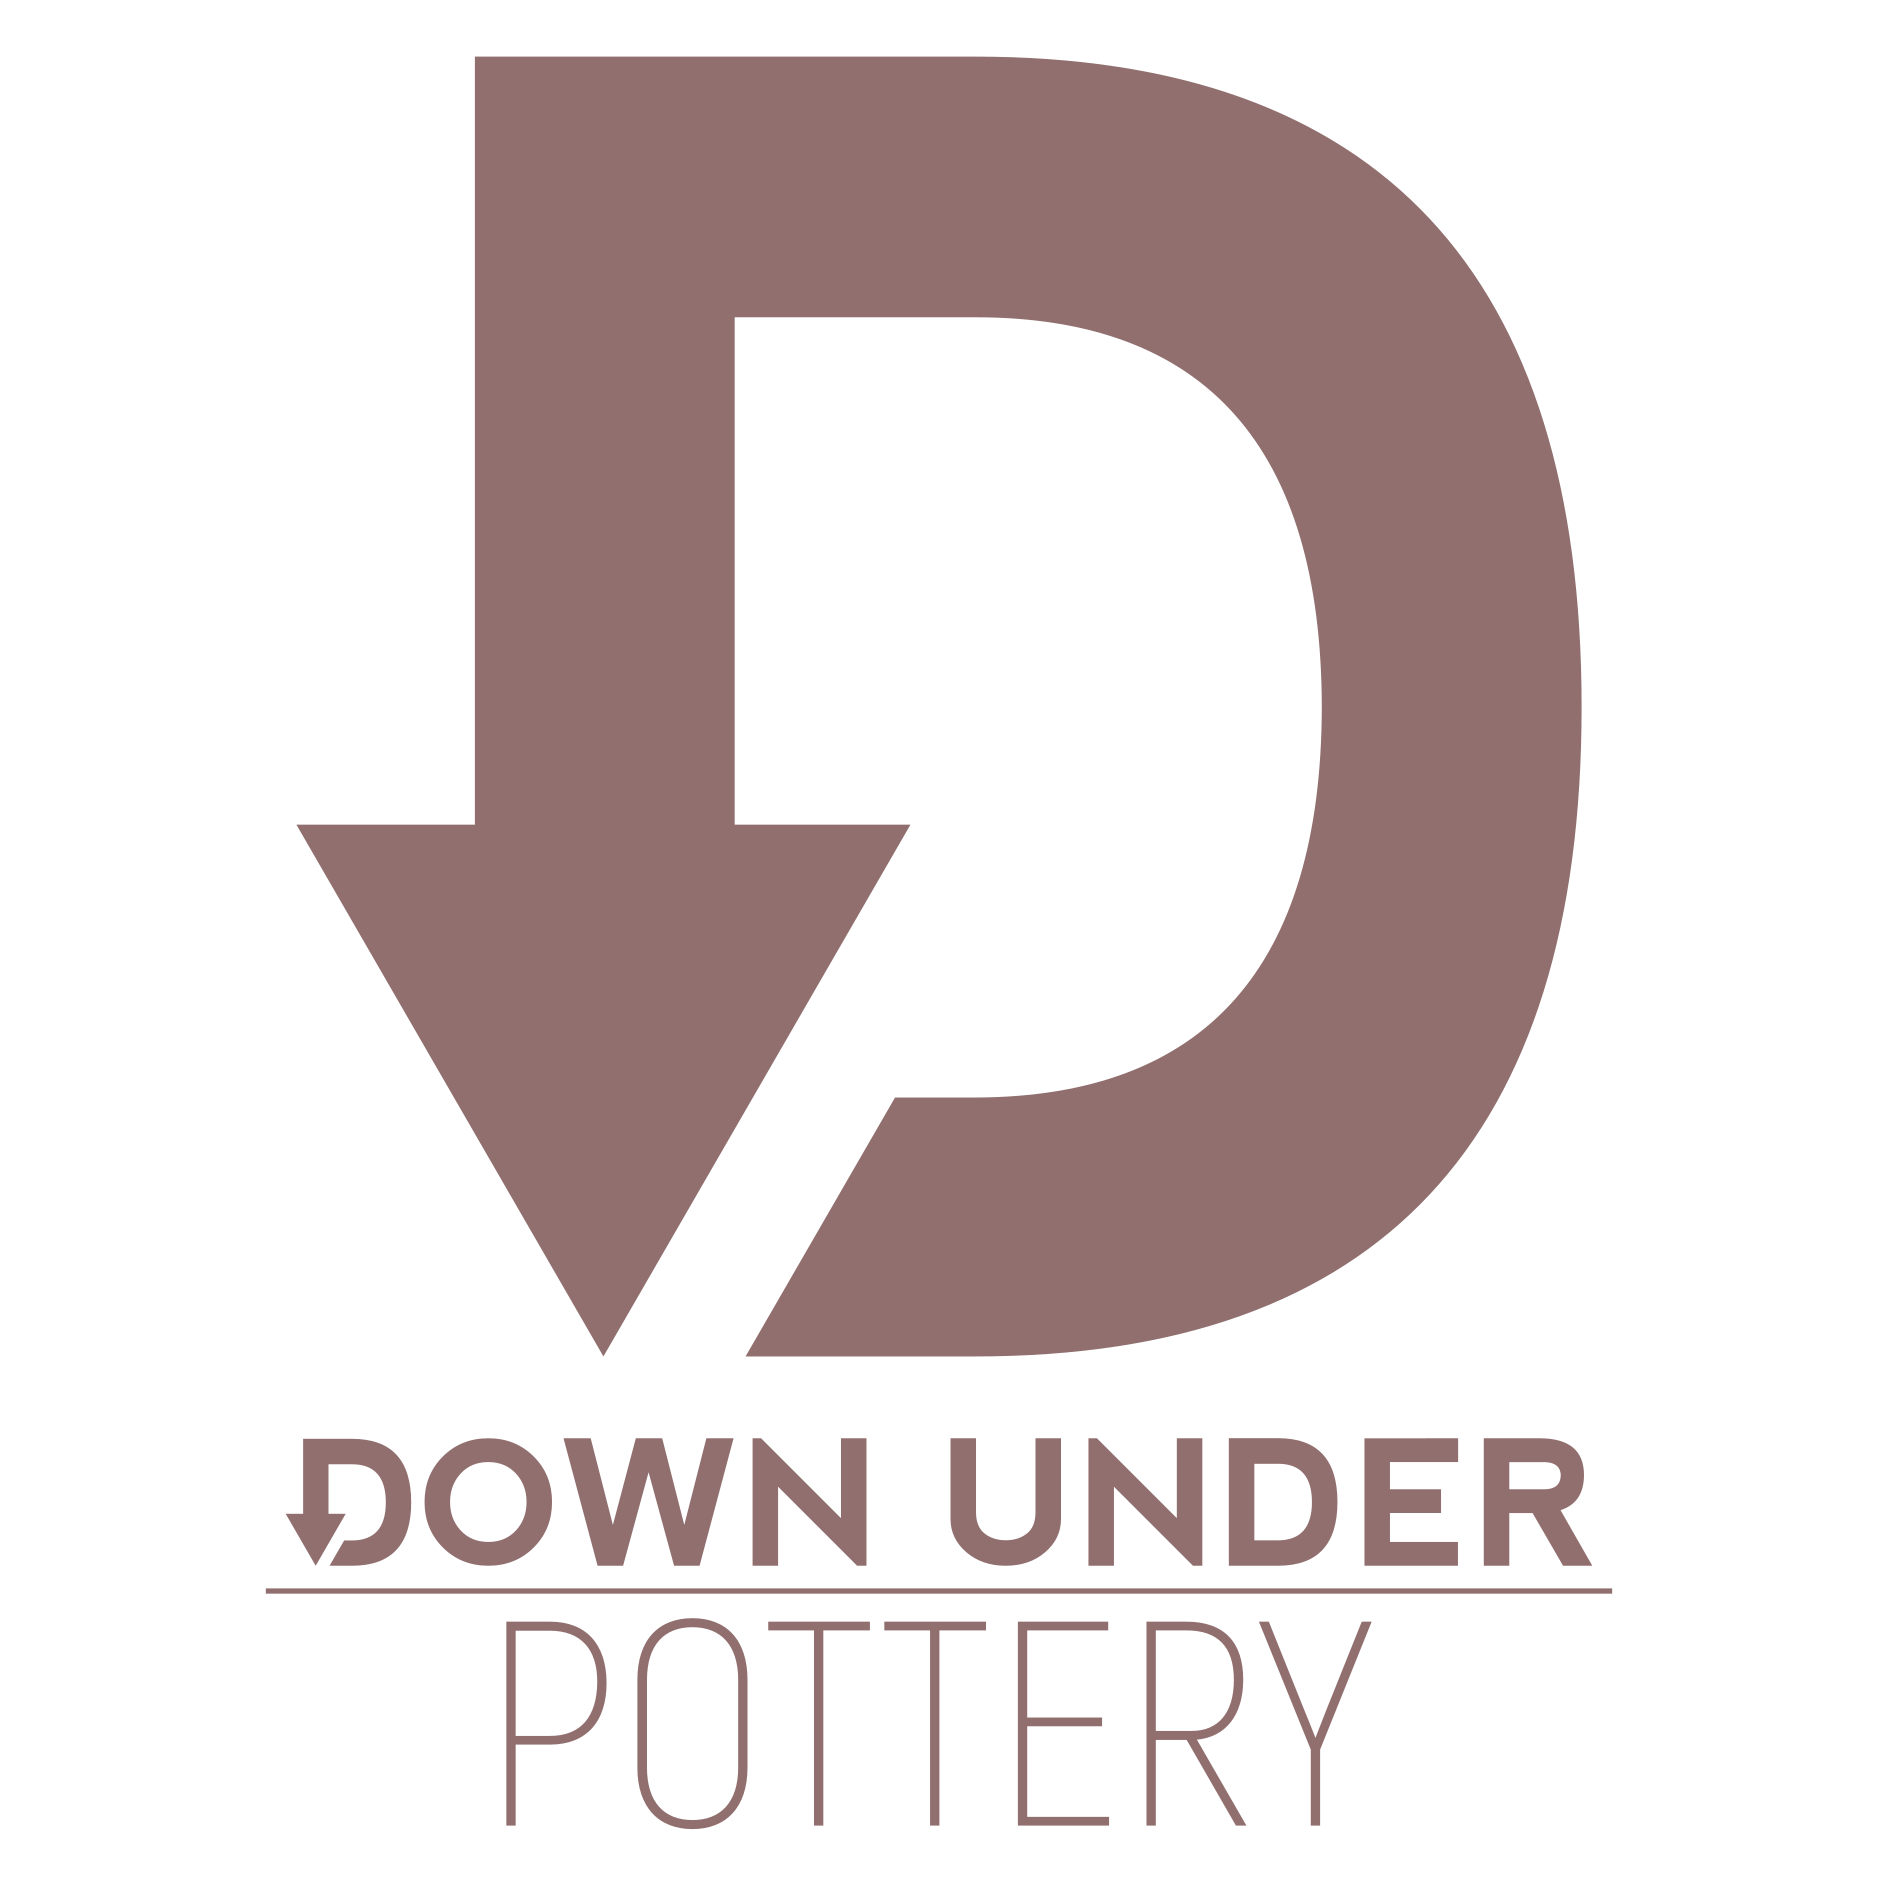 DOWN UNDER POTTERY